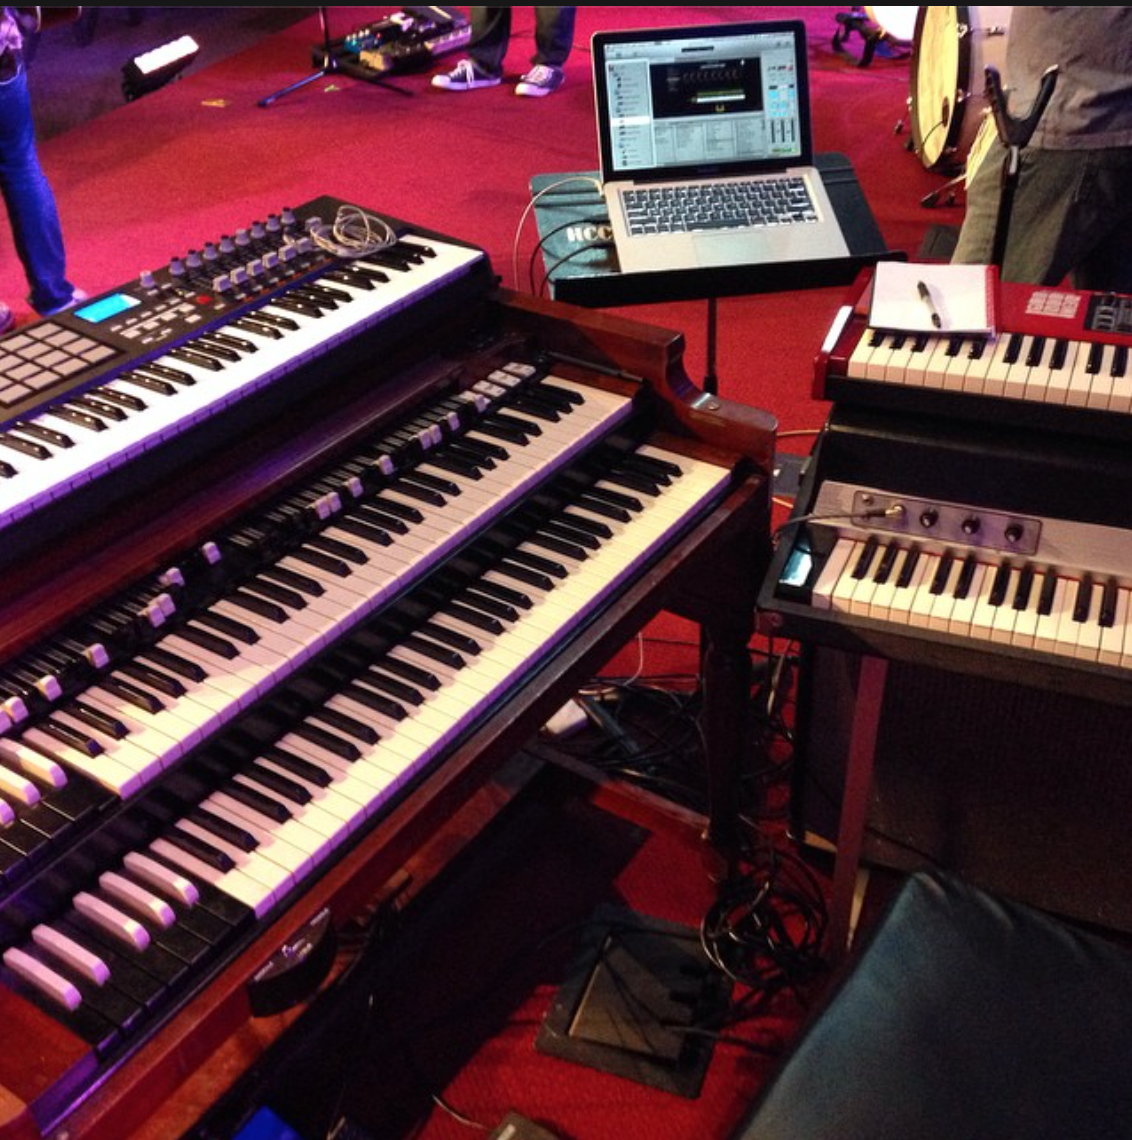 This past weekend I used an Akai 61 key controller with my MainStage 3 rig for a women's conference in St. Louis. Loved the rest of the rig, too- there's nothing like vintage gear!